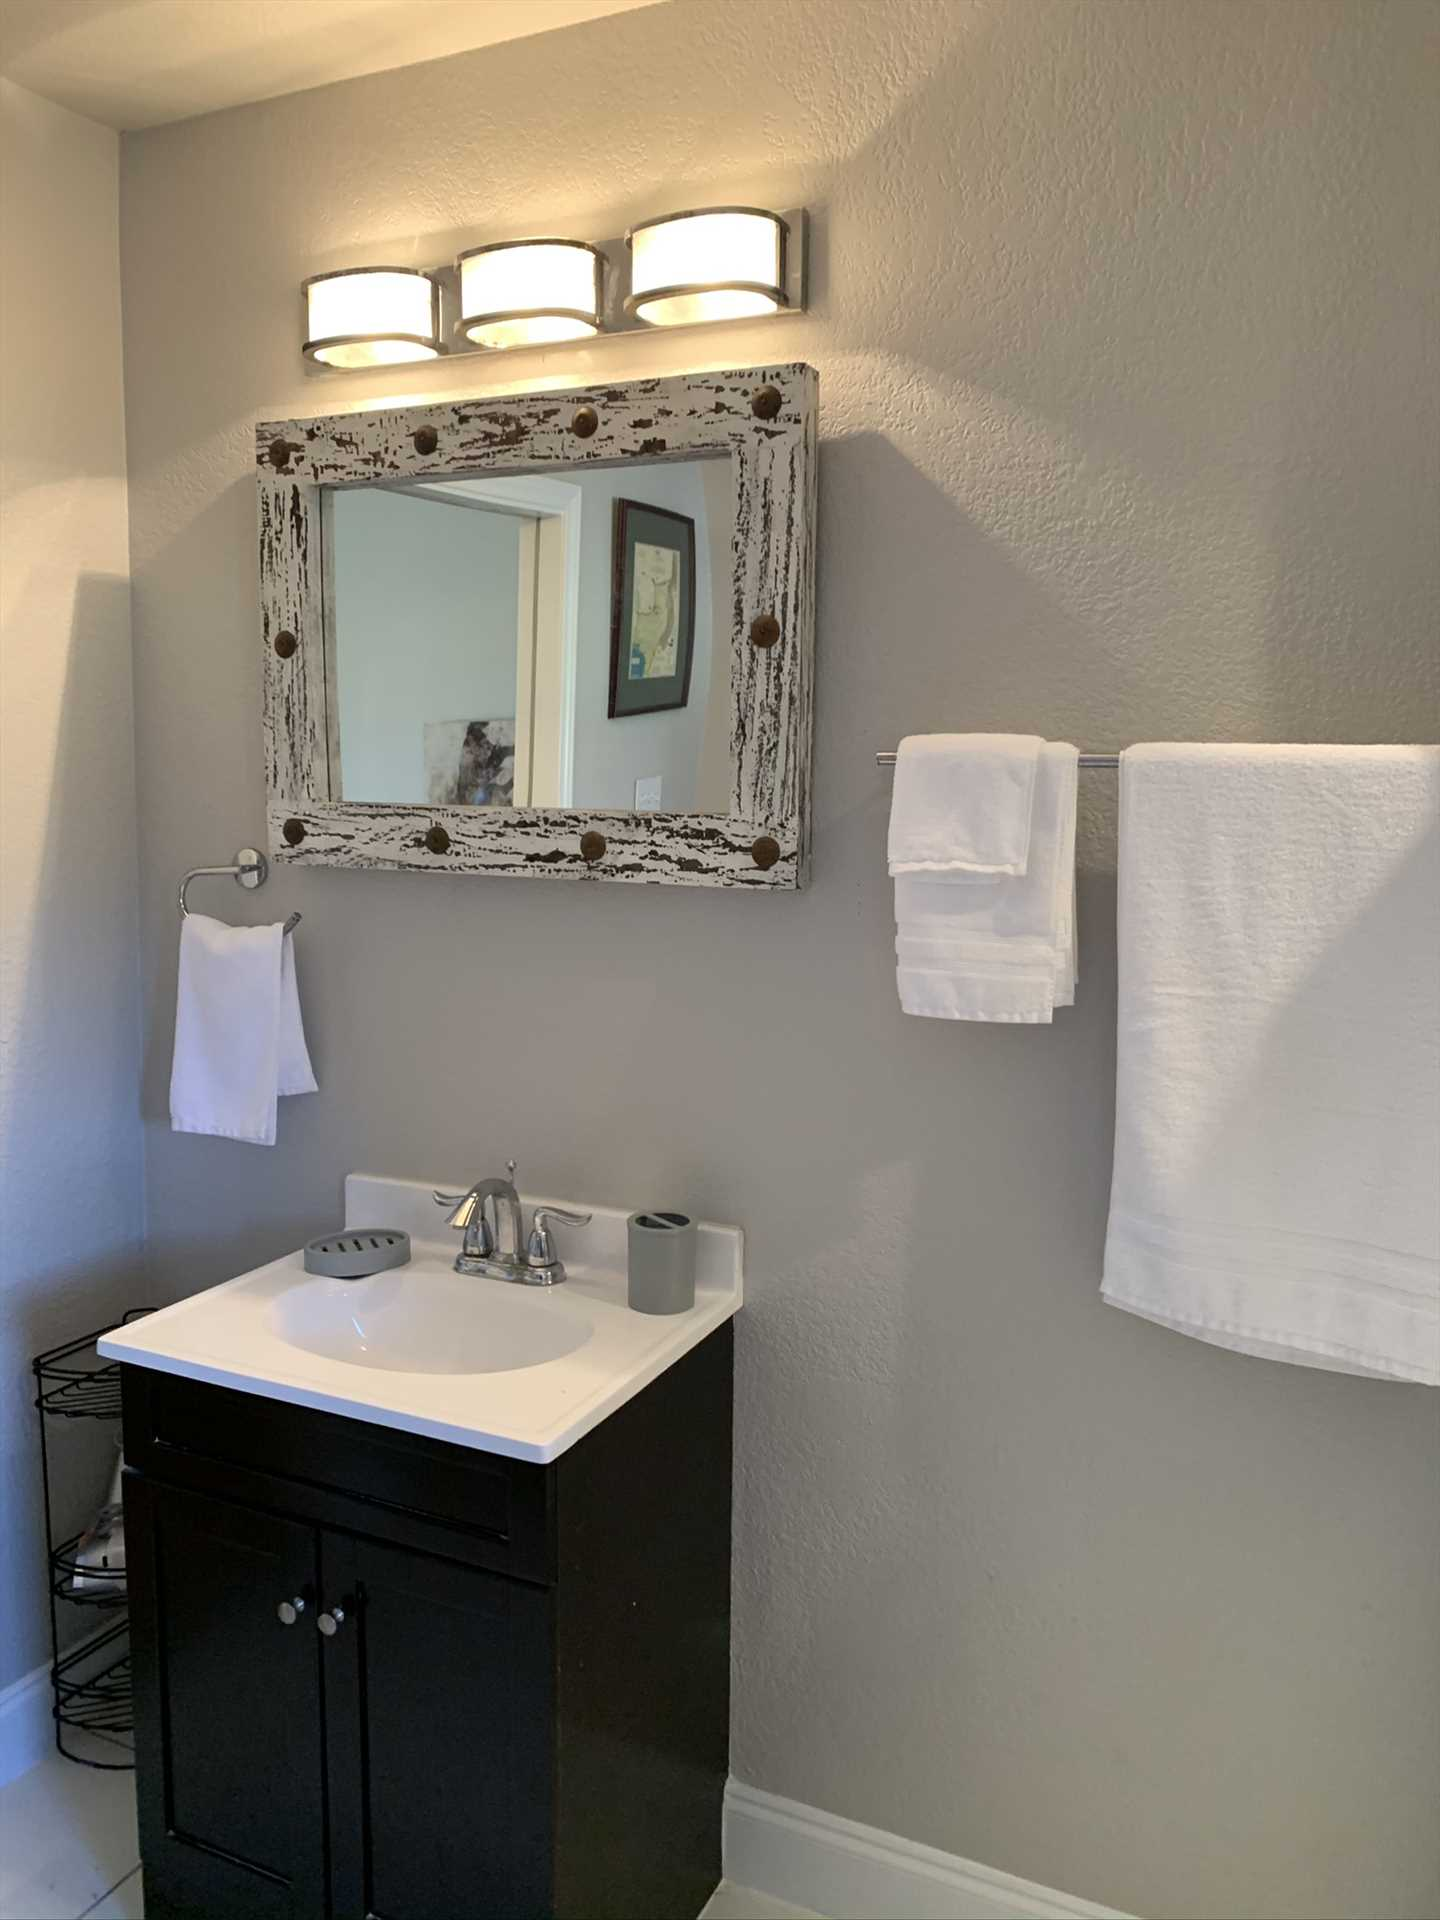 Subtle but friendly decorative touches, like the ornate mirror in the bathroom, help make the Hideout a comfortable guest home for your intimate holiday.